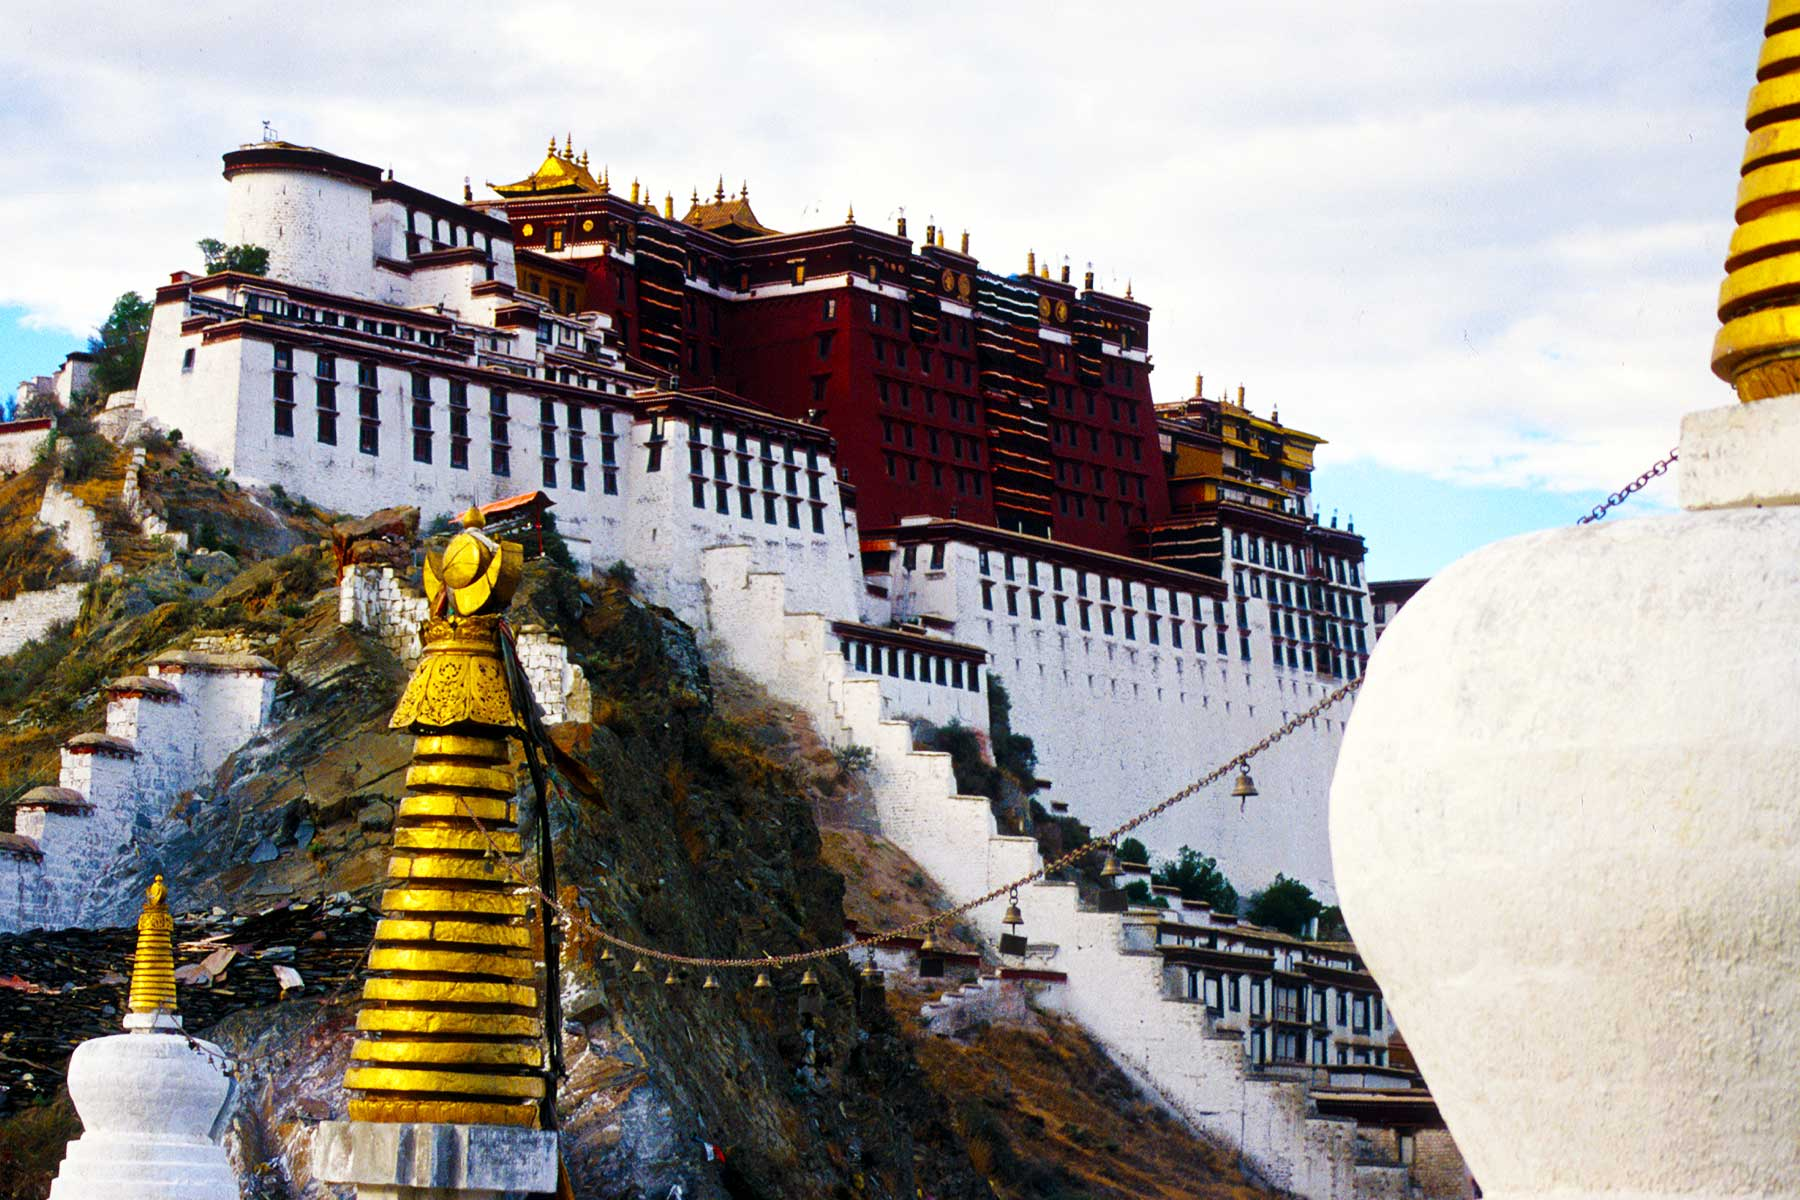 Potala Palace | Former residence of the Dali Lama | Lhasa, Tibet | Steven Martin | Study Abroad Journal